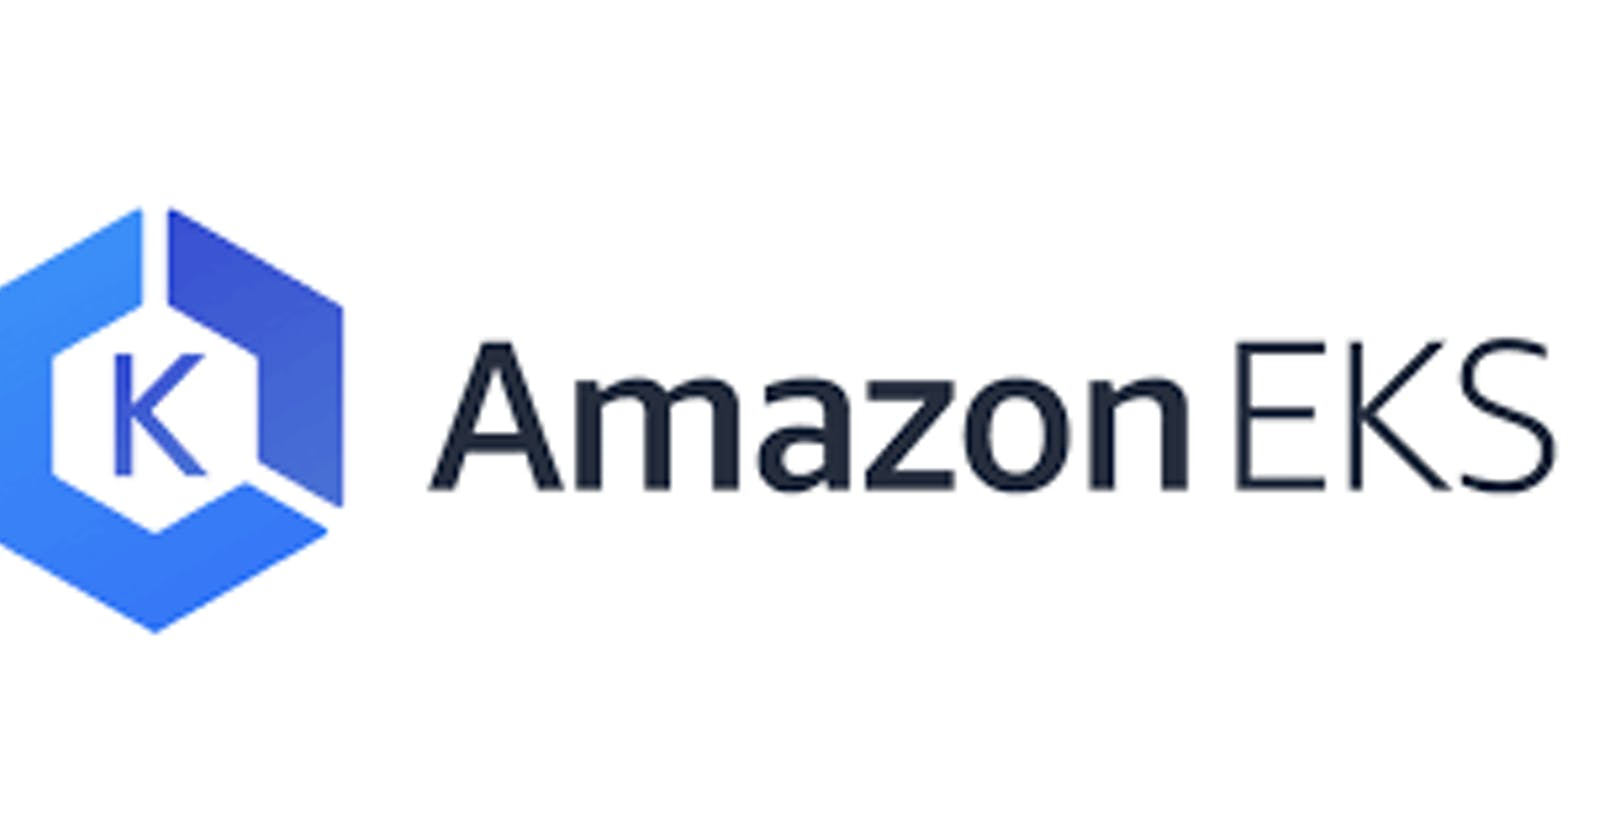 Infrastructure as Code (IaC) to deploy Managed EKS Cluster and Node Group on AWS - Part 2